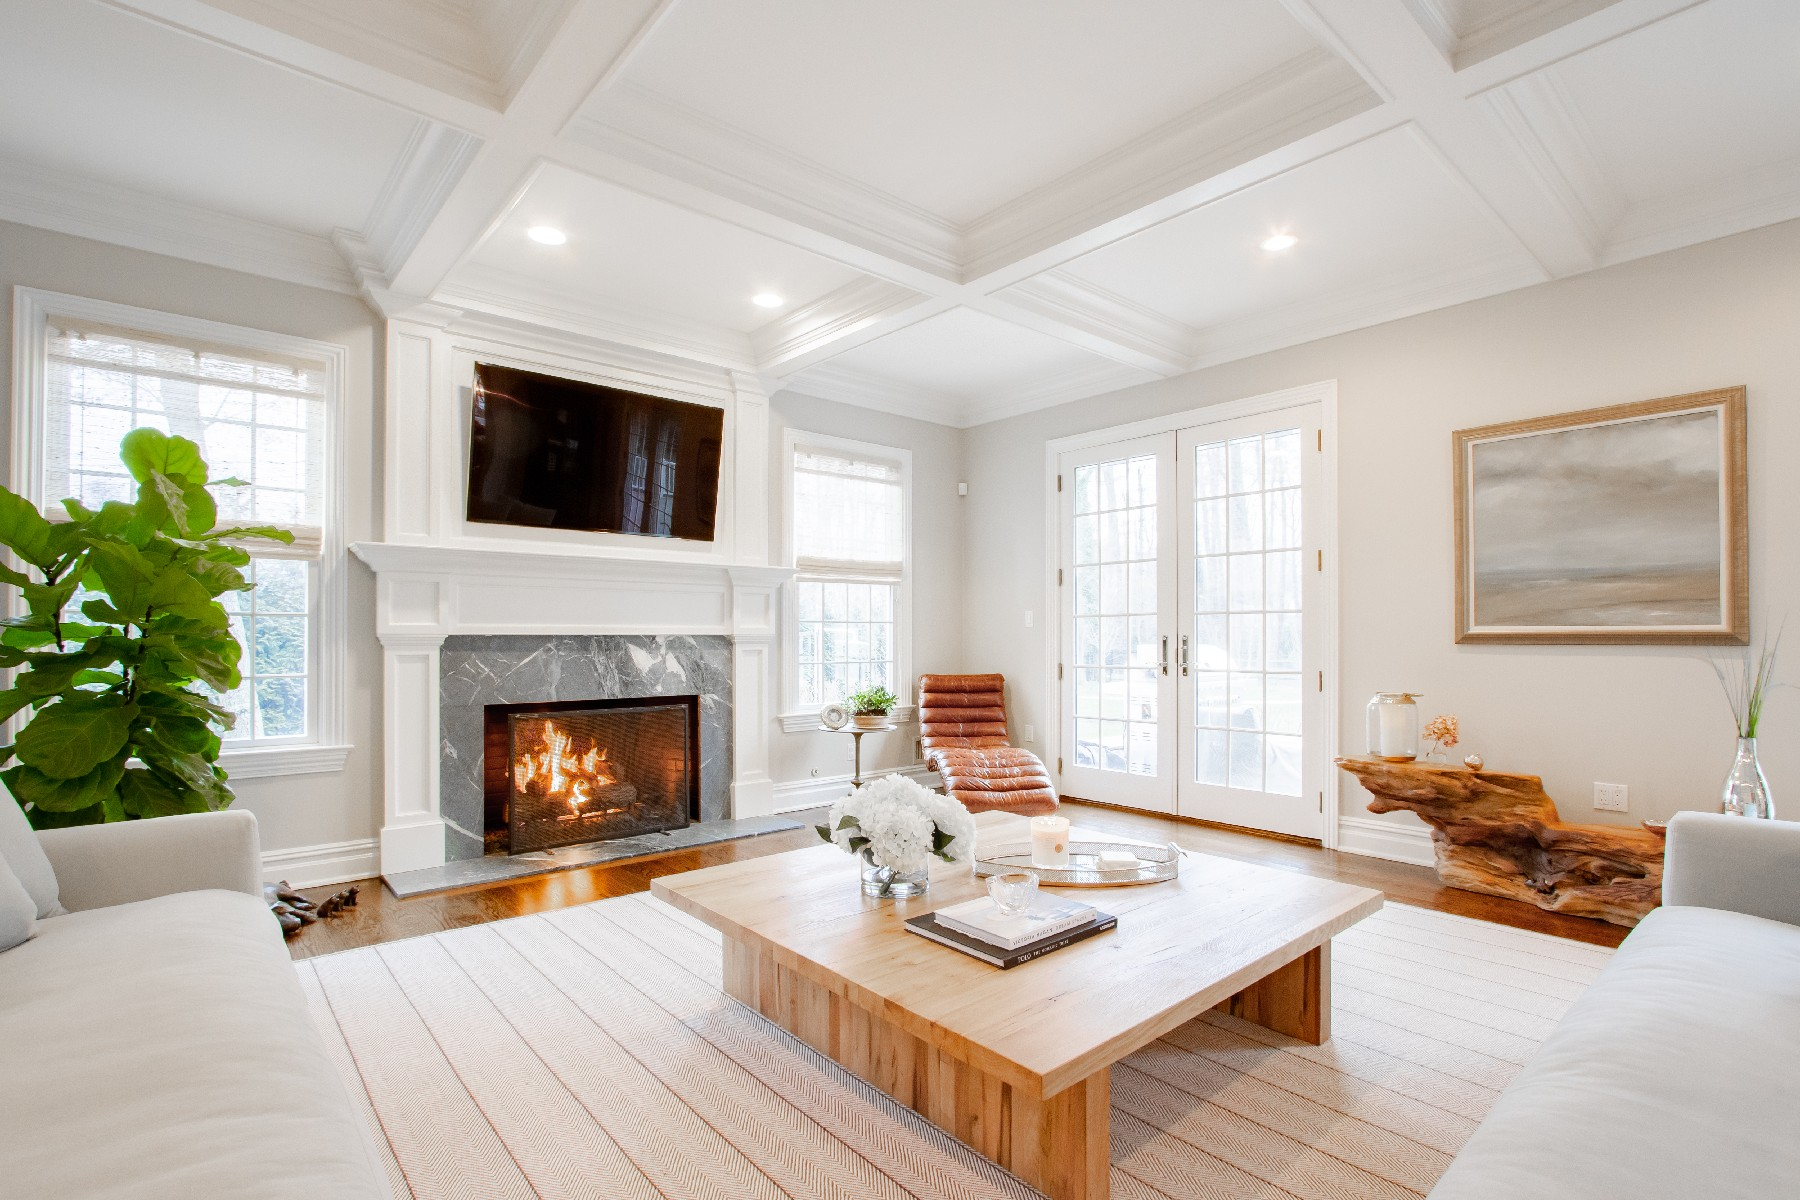 Single Family Homes for Sale at Stunning Designer Home 10 Heathcliff Rd, Rumson, New Jersey 07760 United States